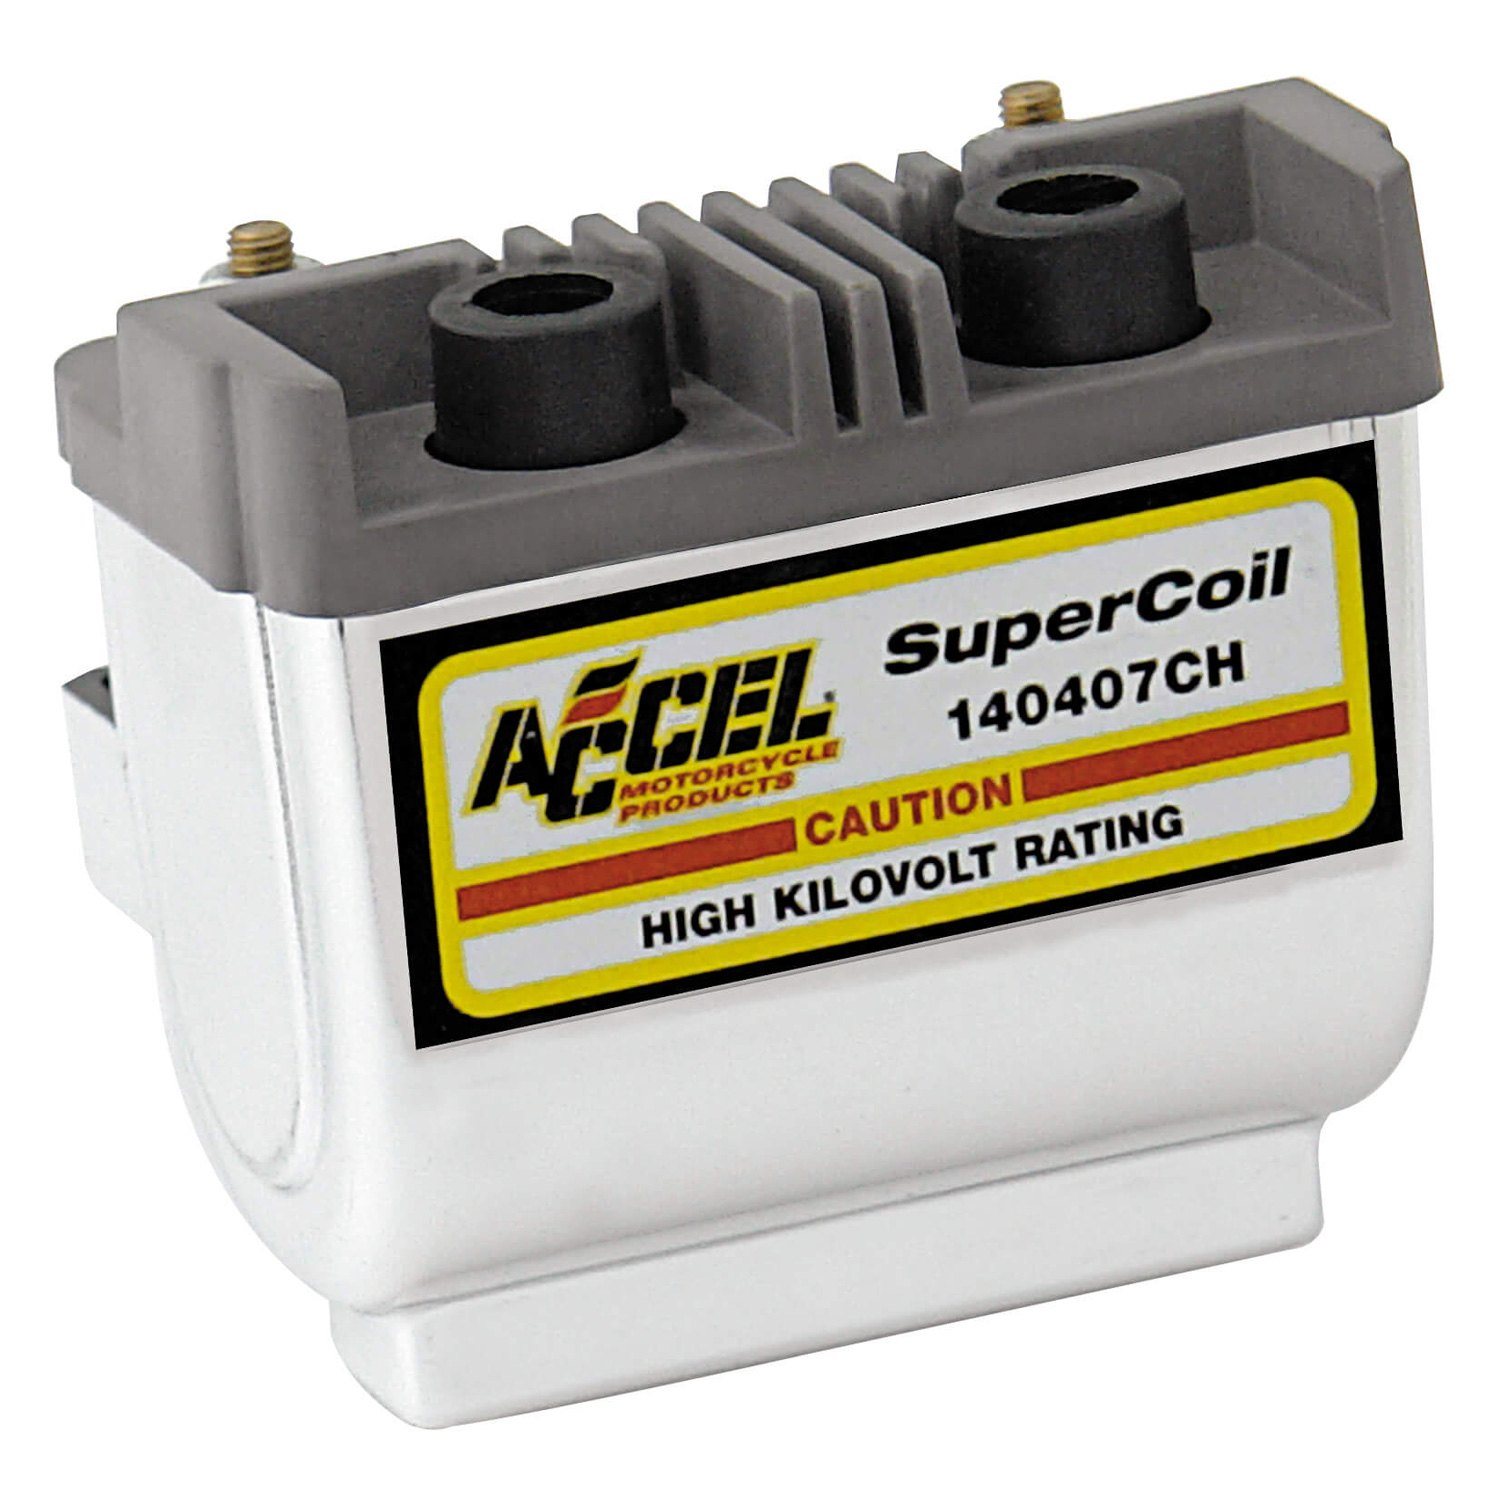 Accel 140012 Super Coil Ignition Coil